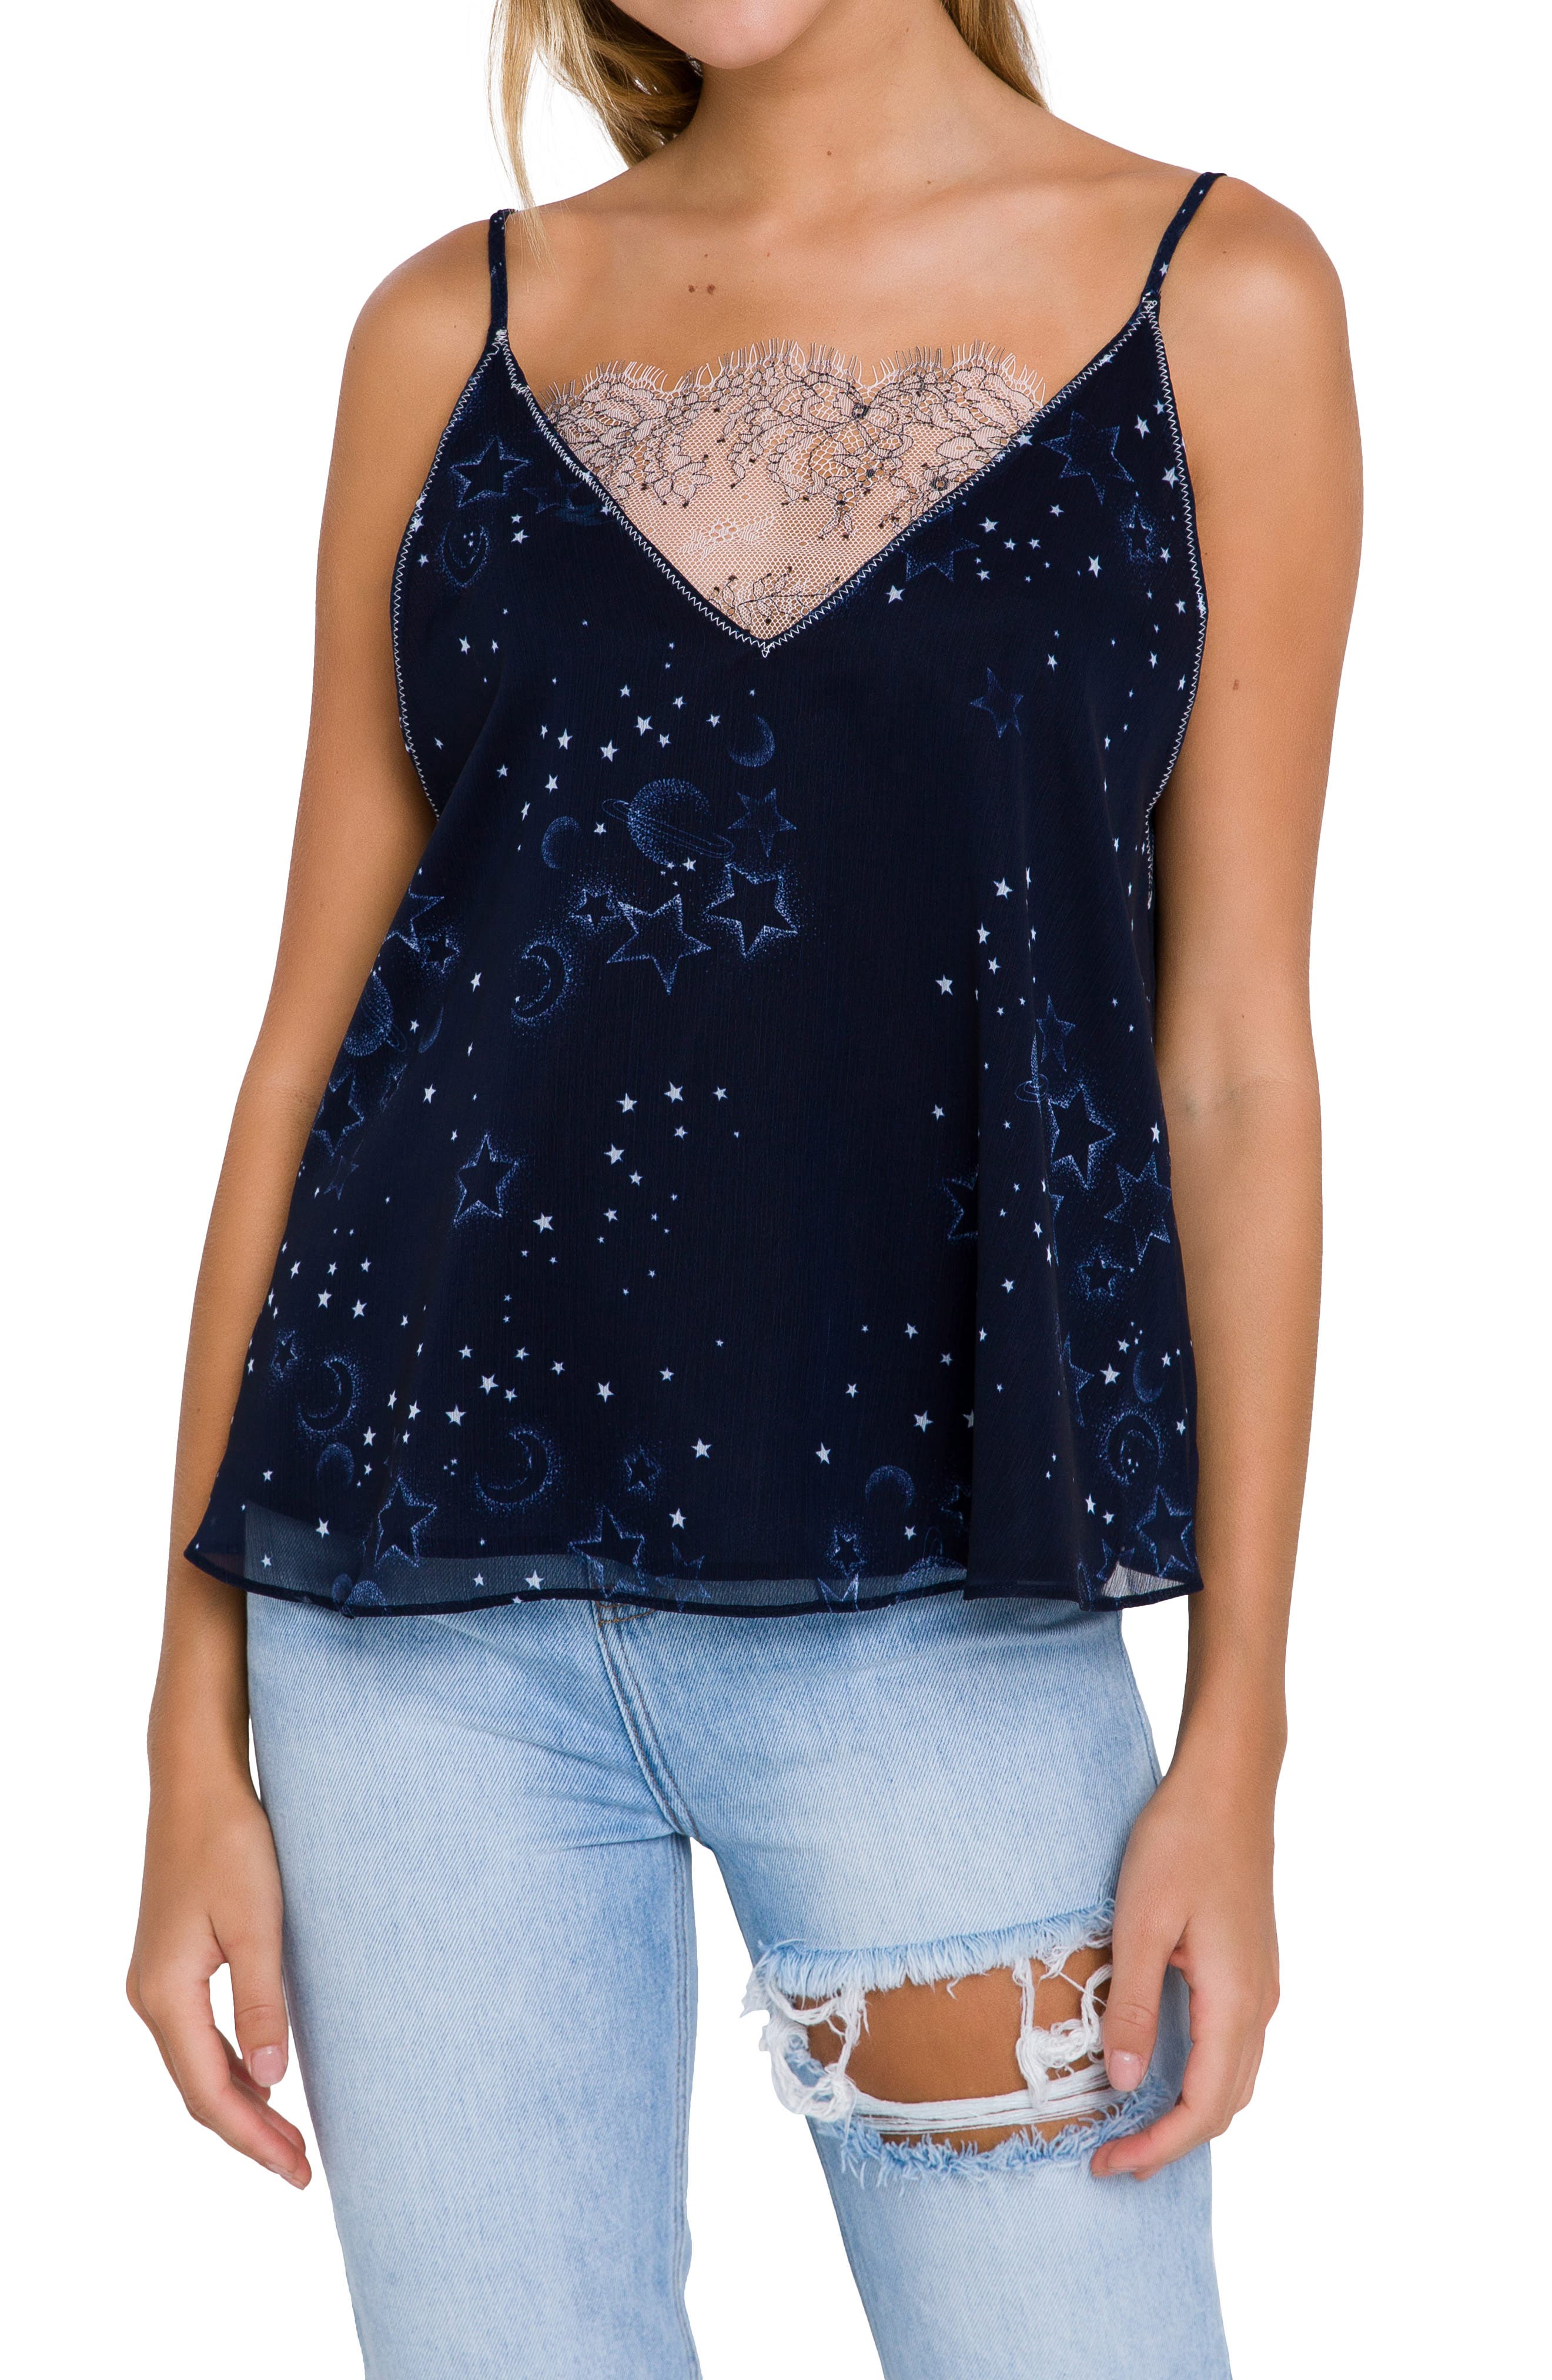 Spaced Out Camisole